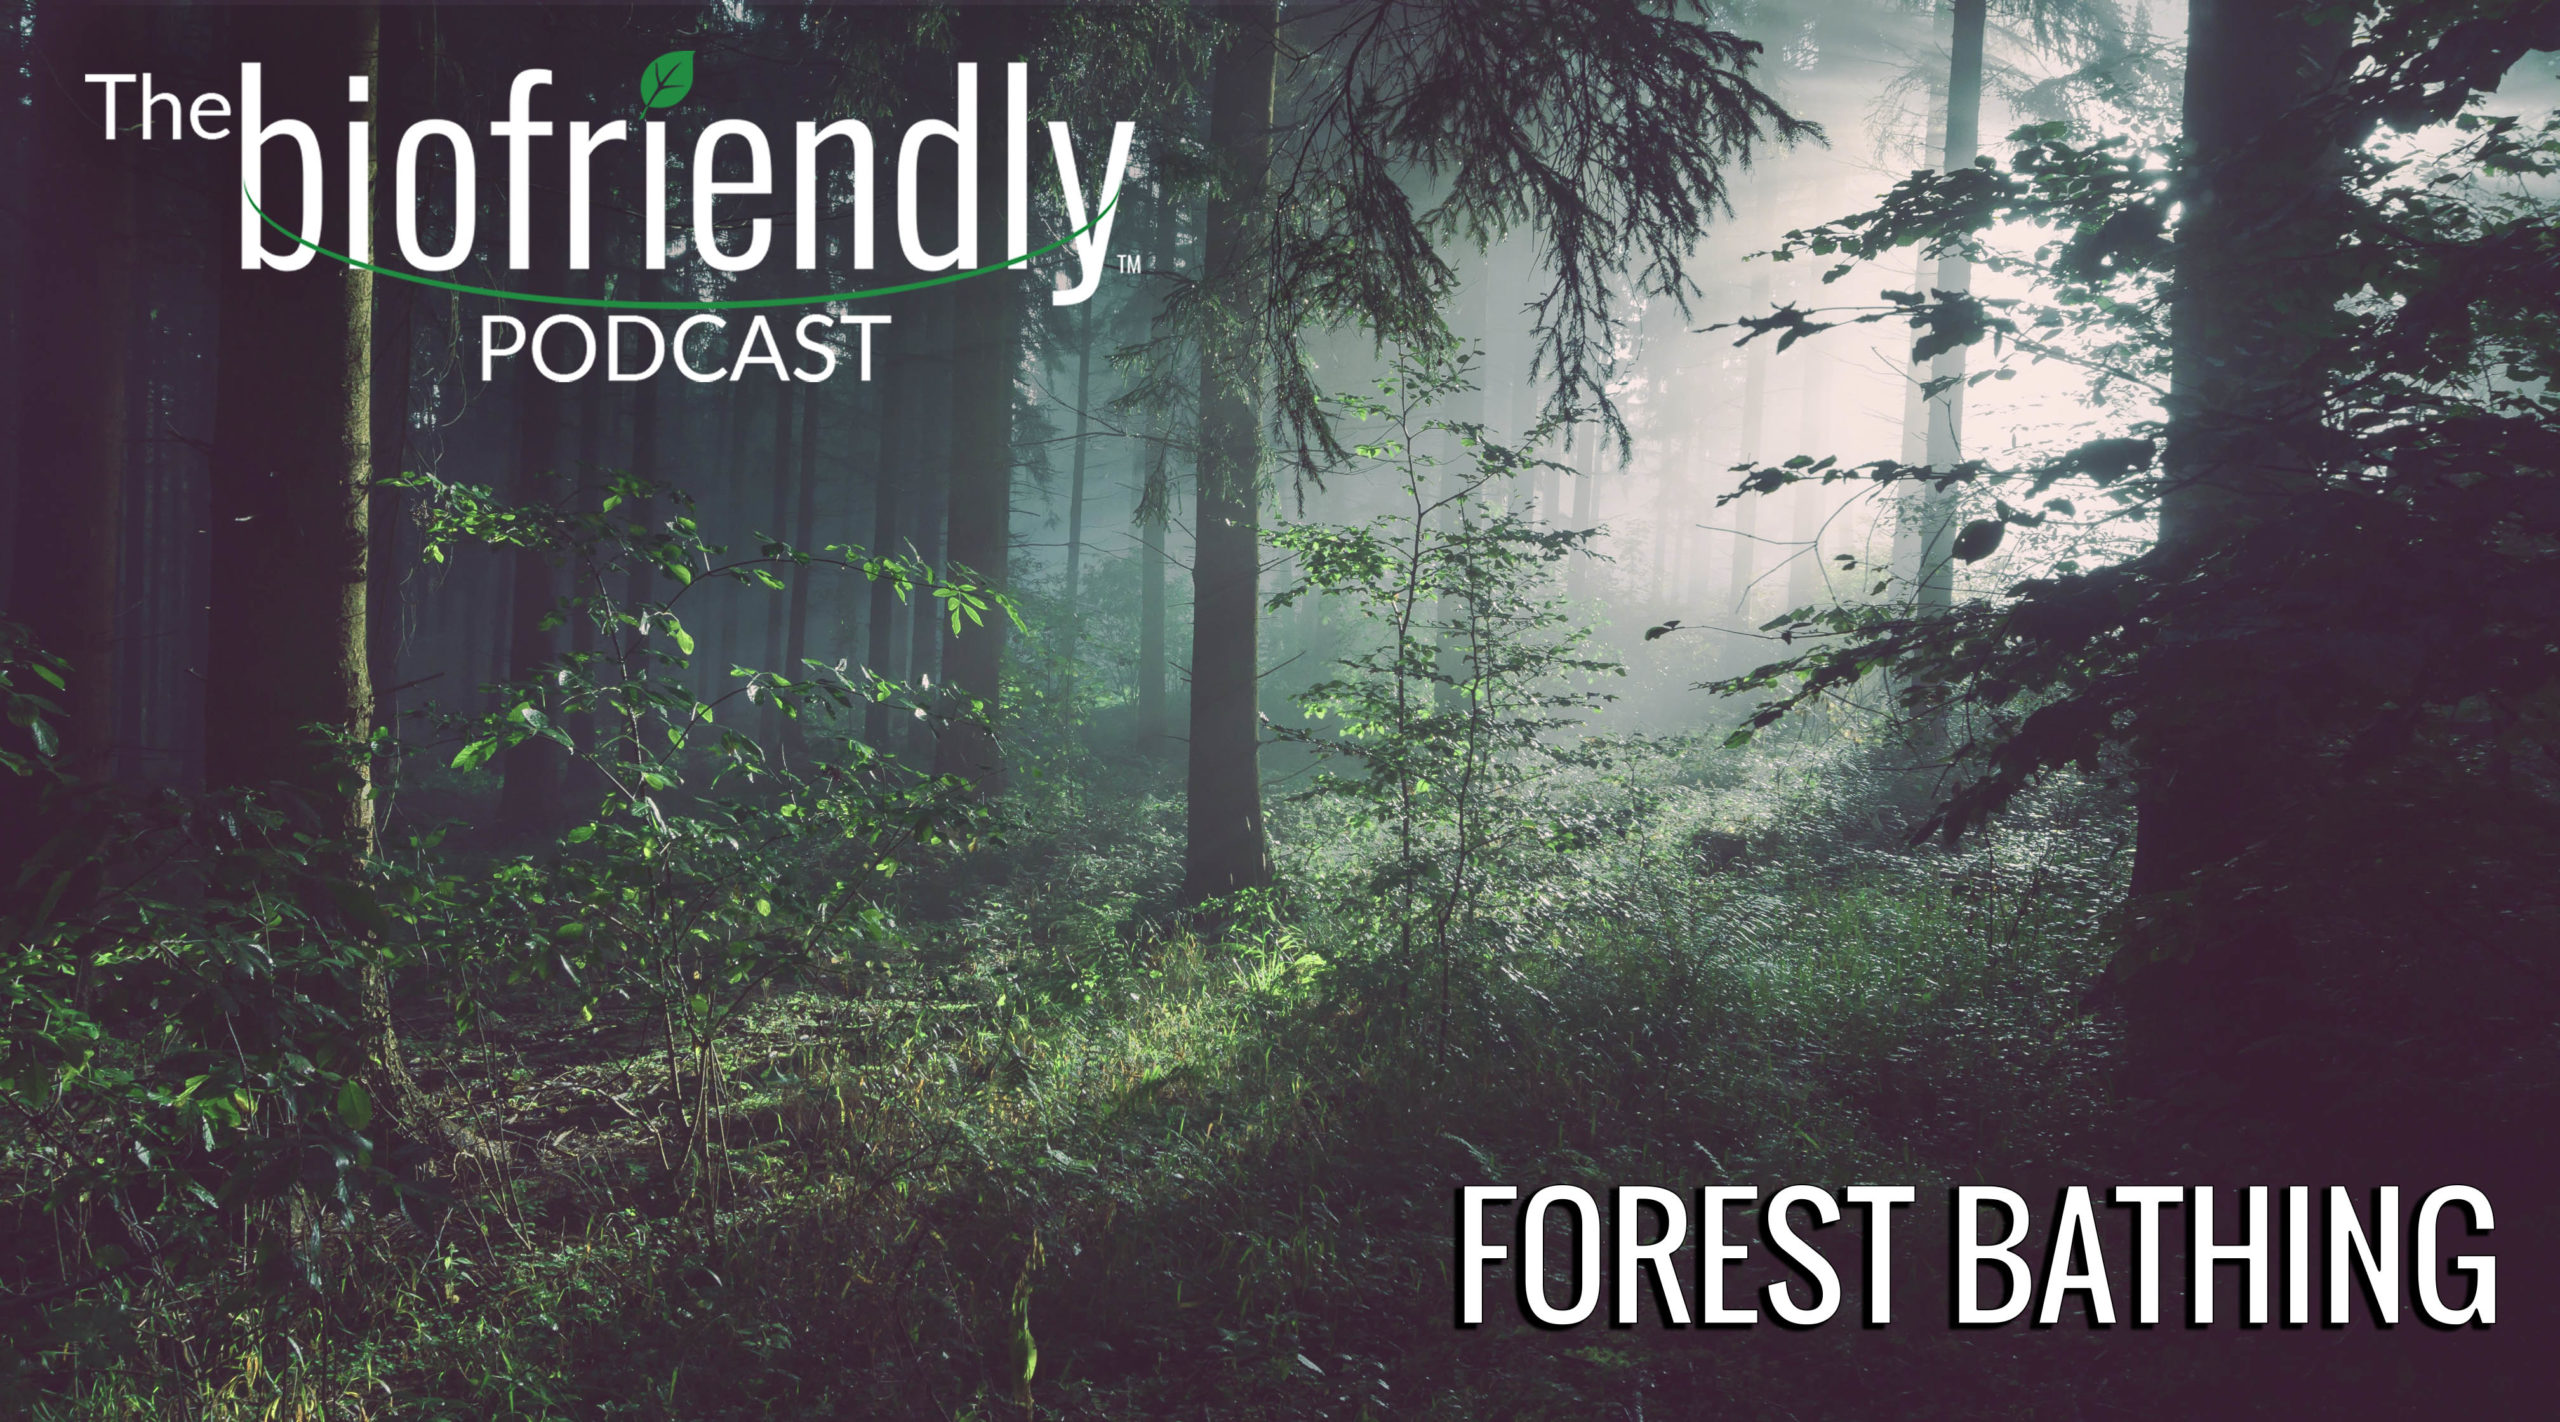 The Biofriendly Podcast - Episode 49 - Forest Bathing